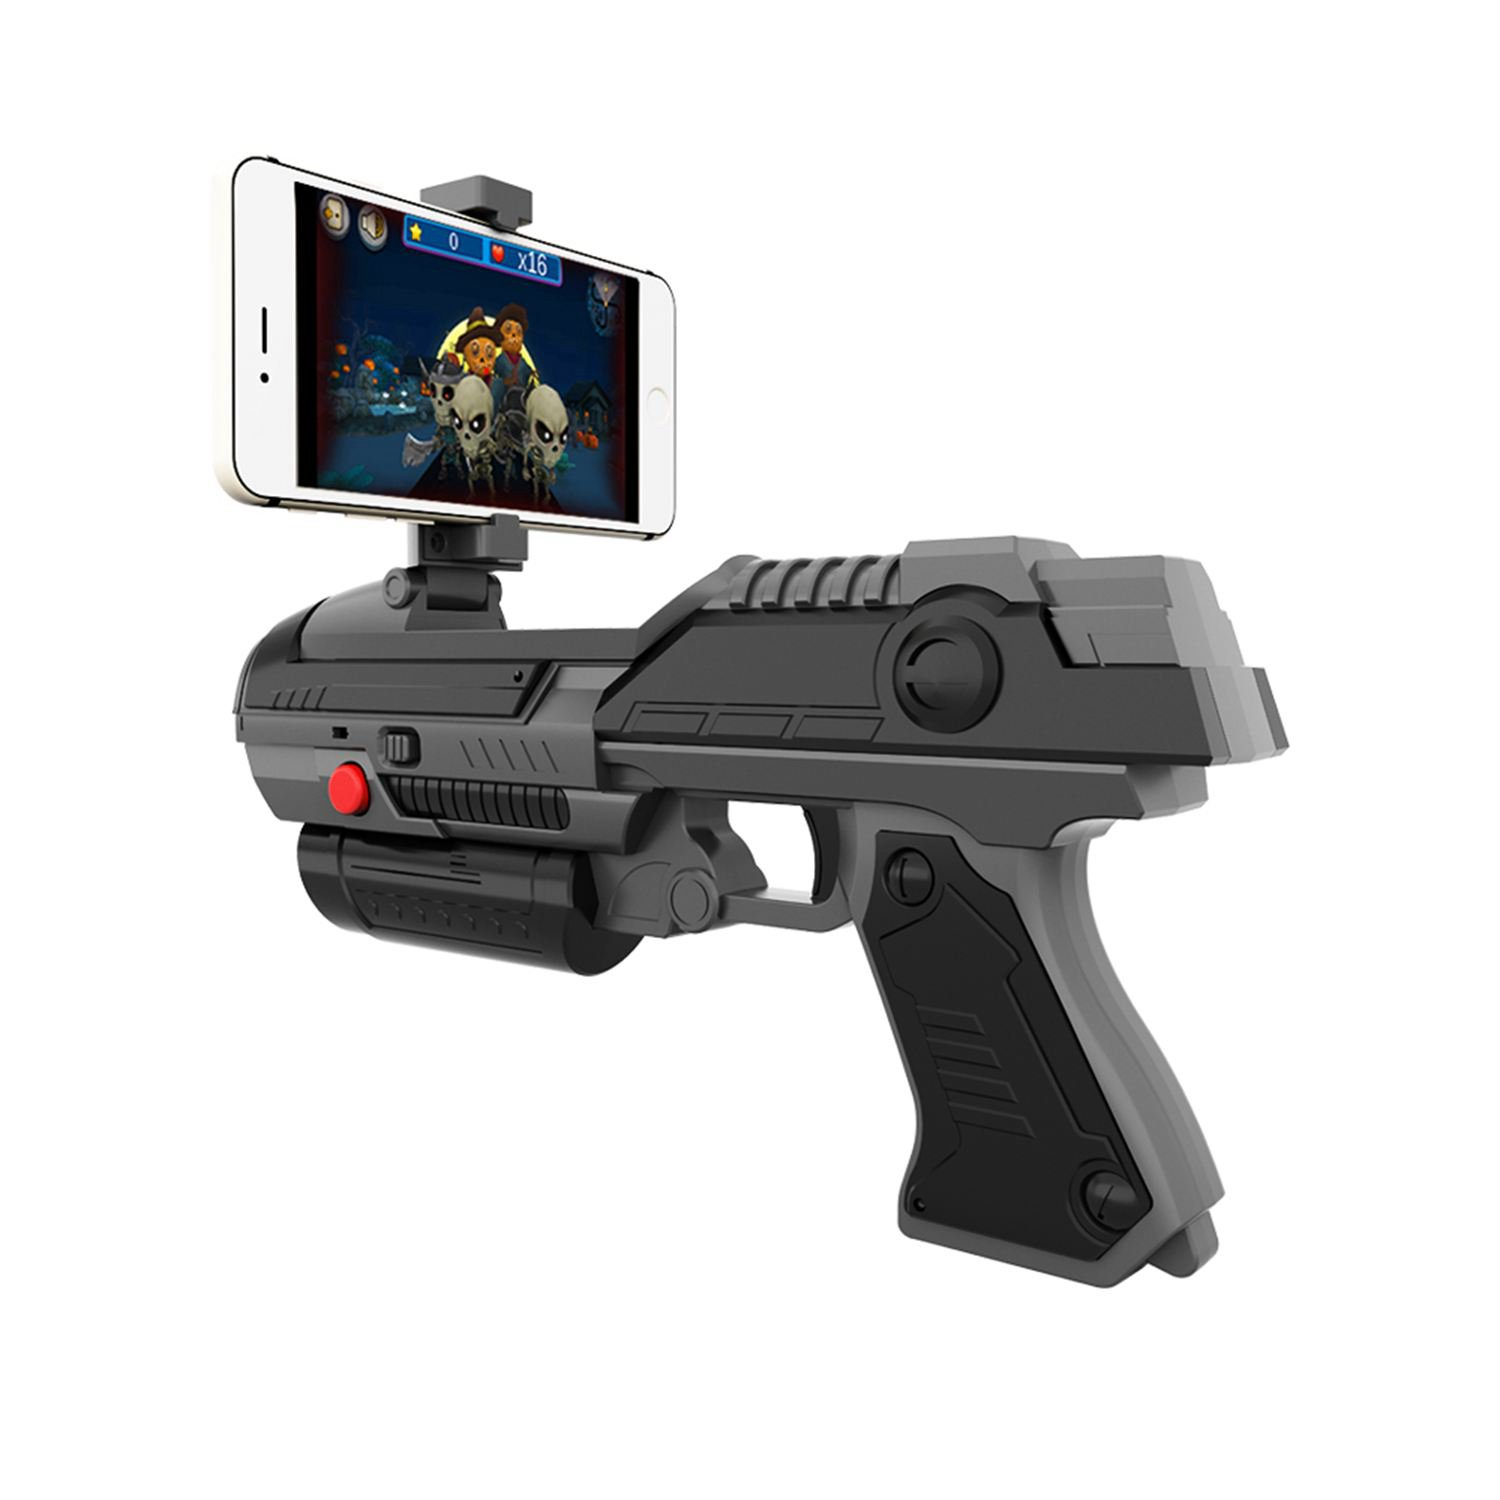 VR Game AR GUN Shooting Game Smartphones Bluetooth Control Toy For IOS Android Air Guns